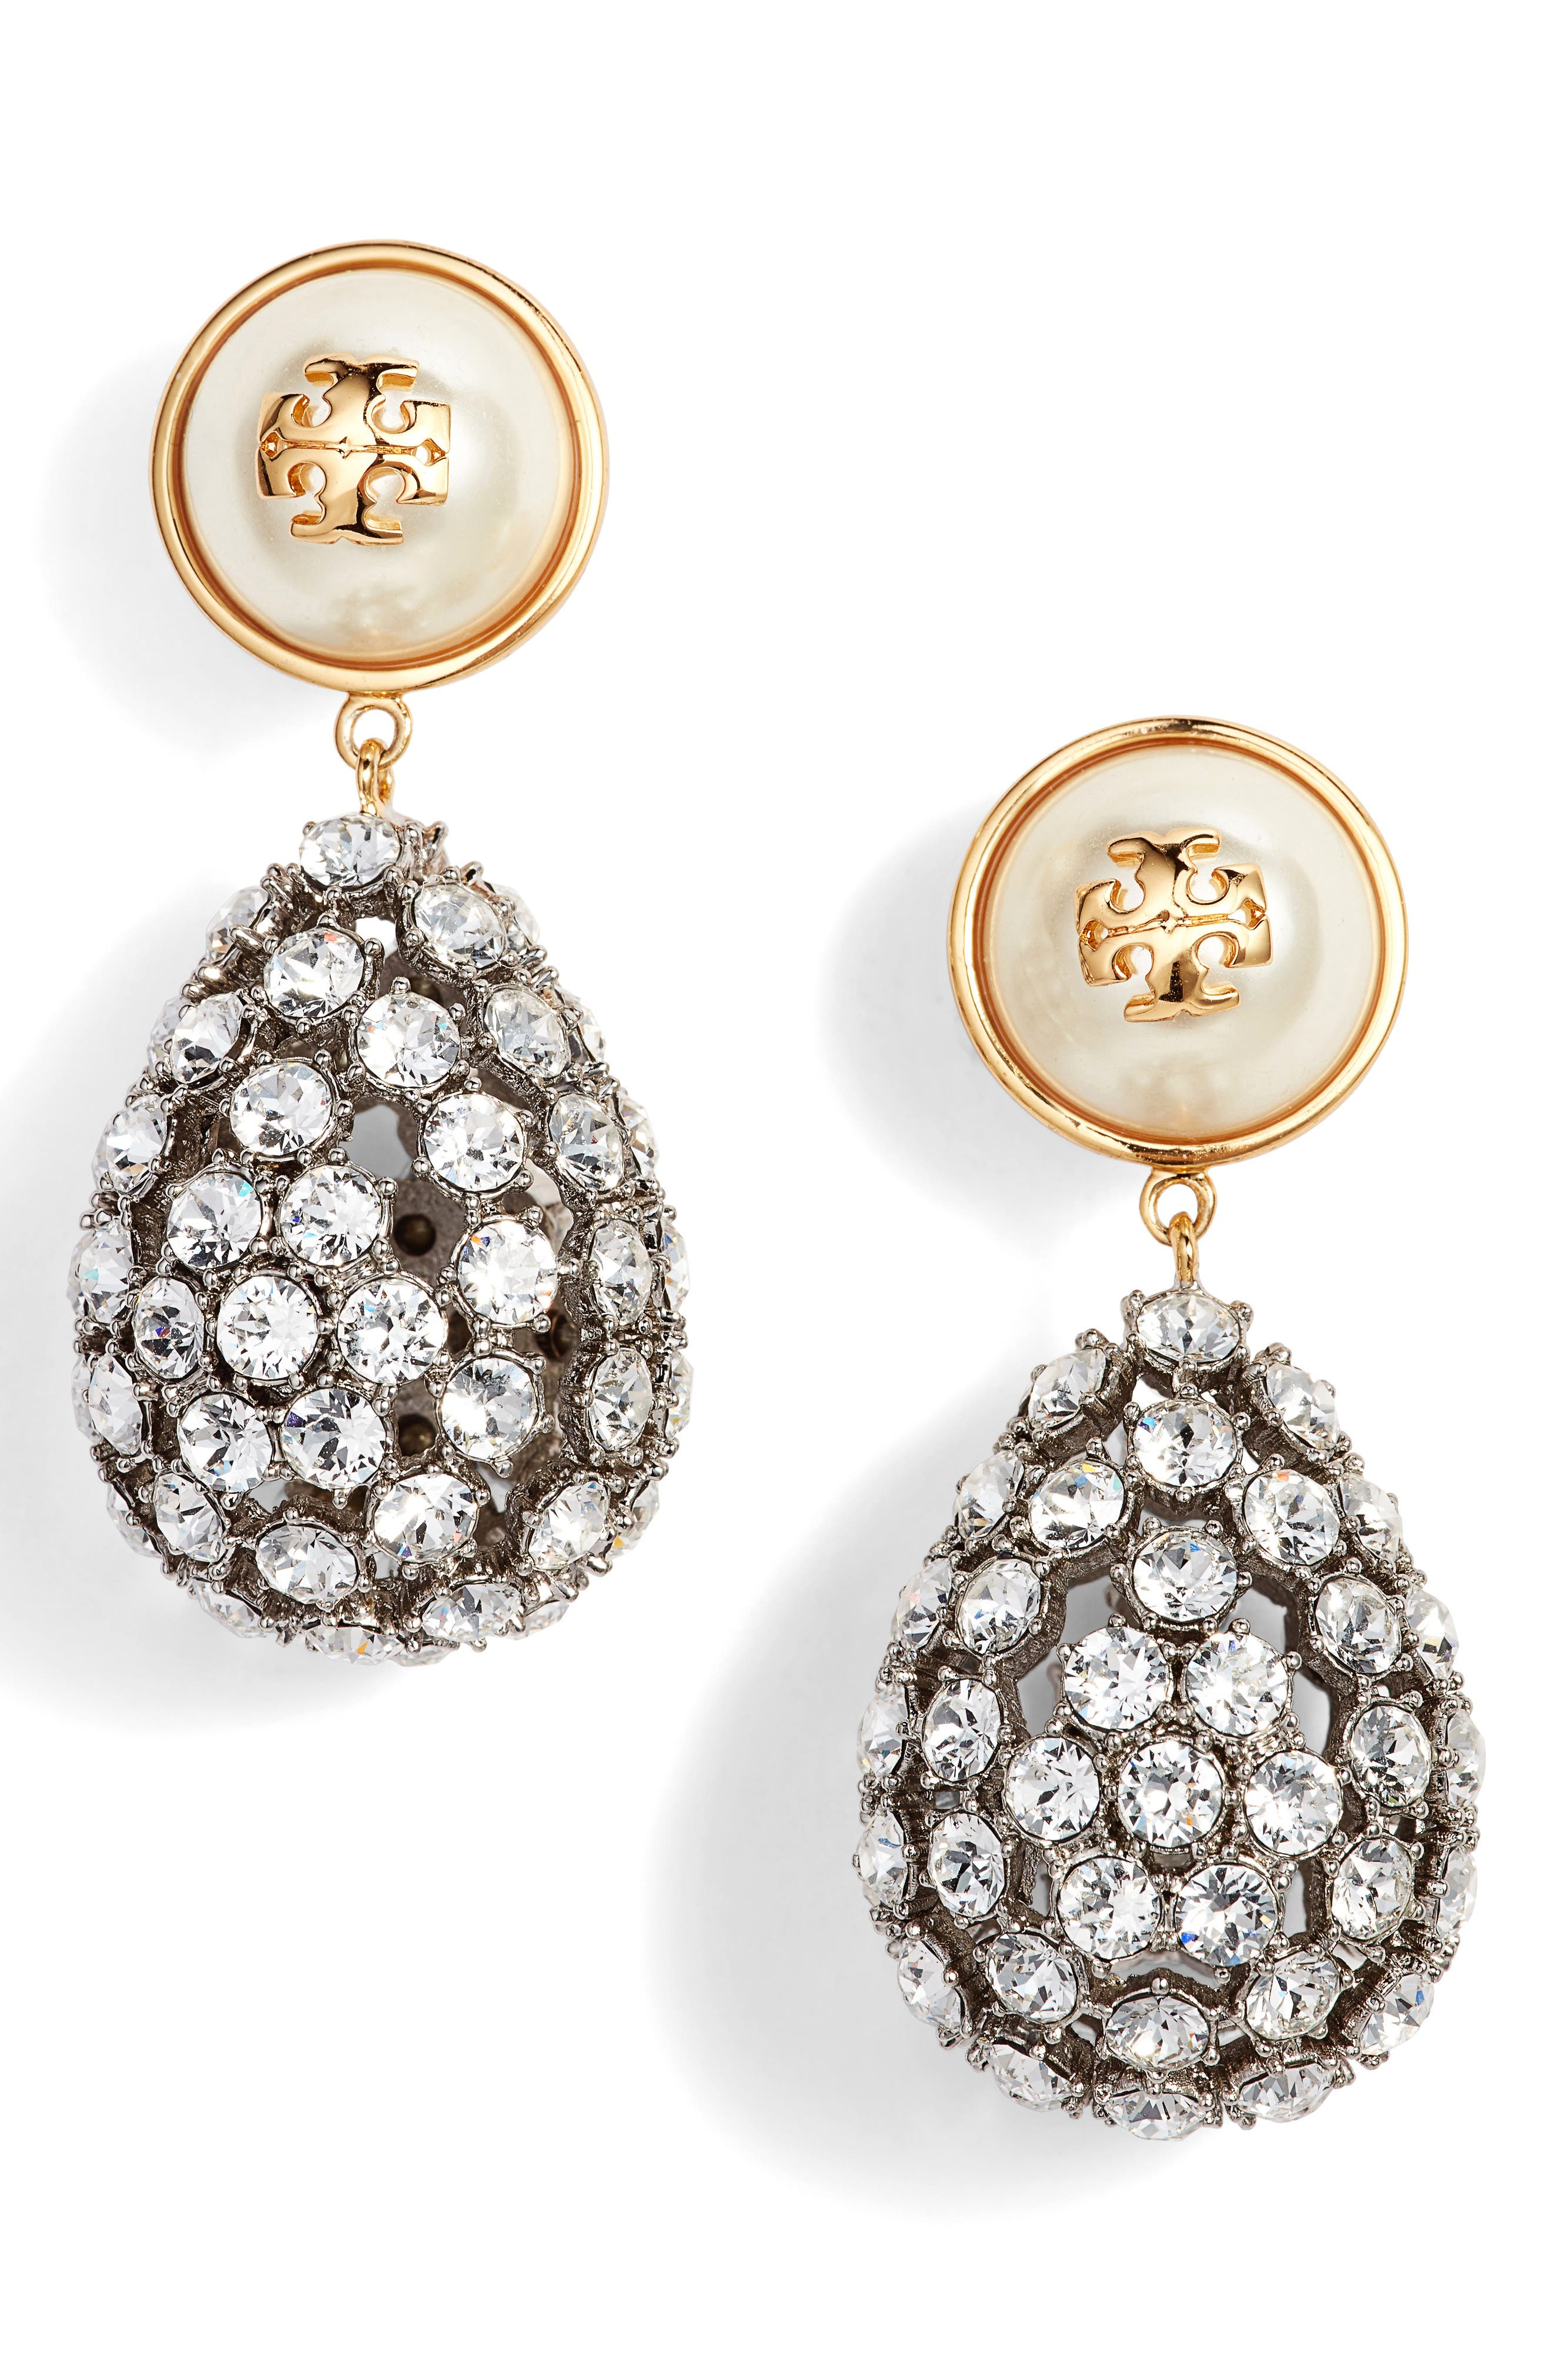 Imitation Pearl Statement Drop Earrings,                             Main thumbnail 1, color,                             Ivory/ Tory Gold